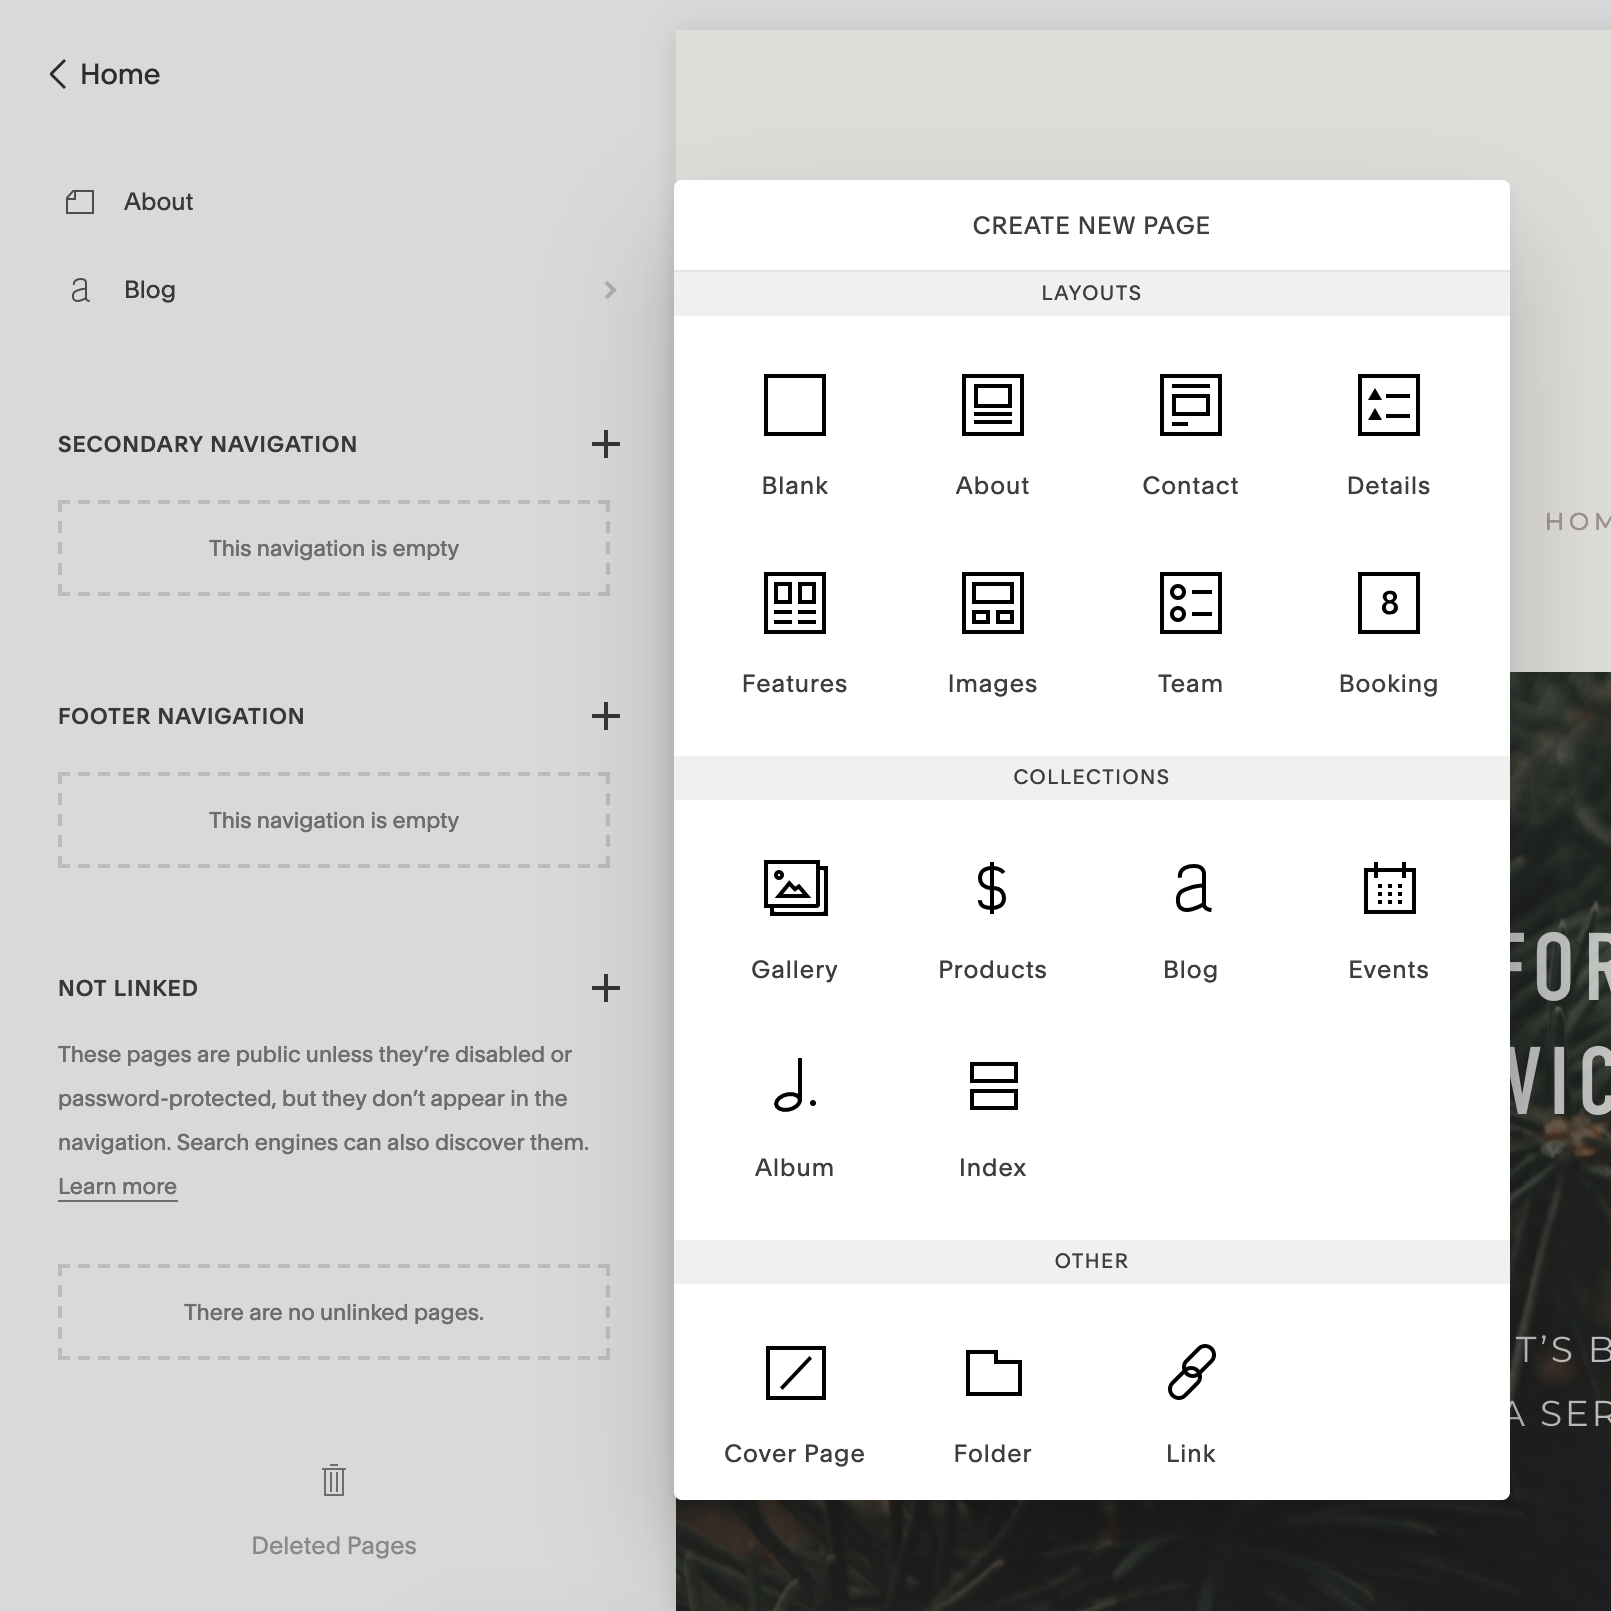 """Clicking the """"+"""" icon in Page or Navigation sections brings up a clean, simple overlay to choose the type of page or content you want to add."""